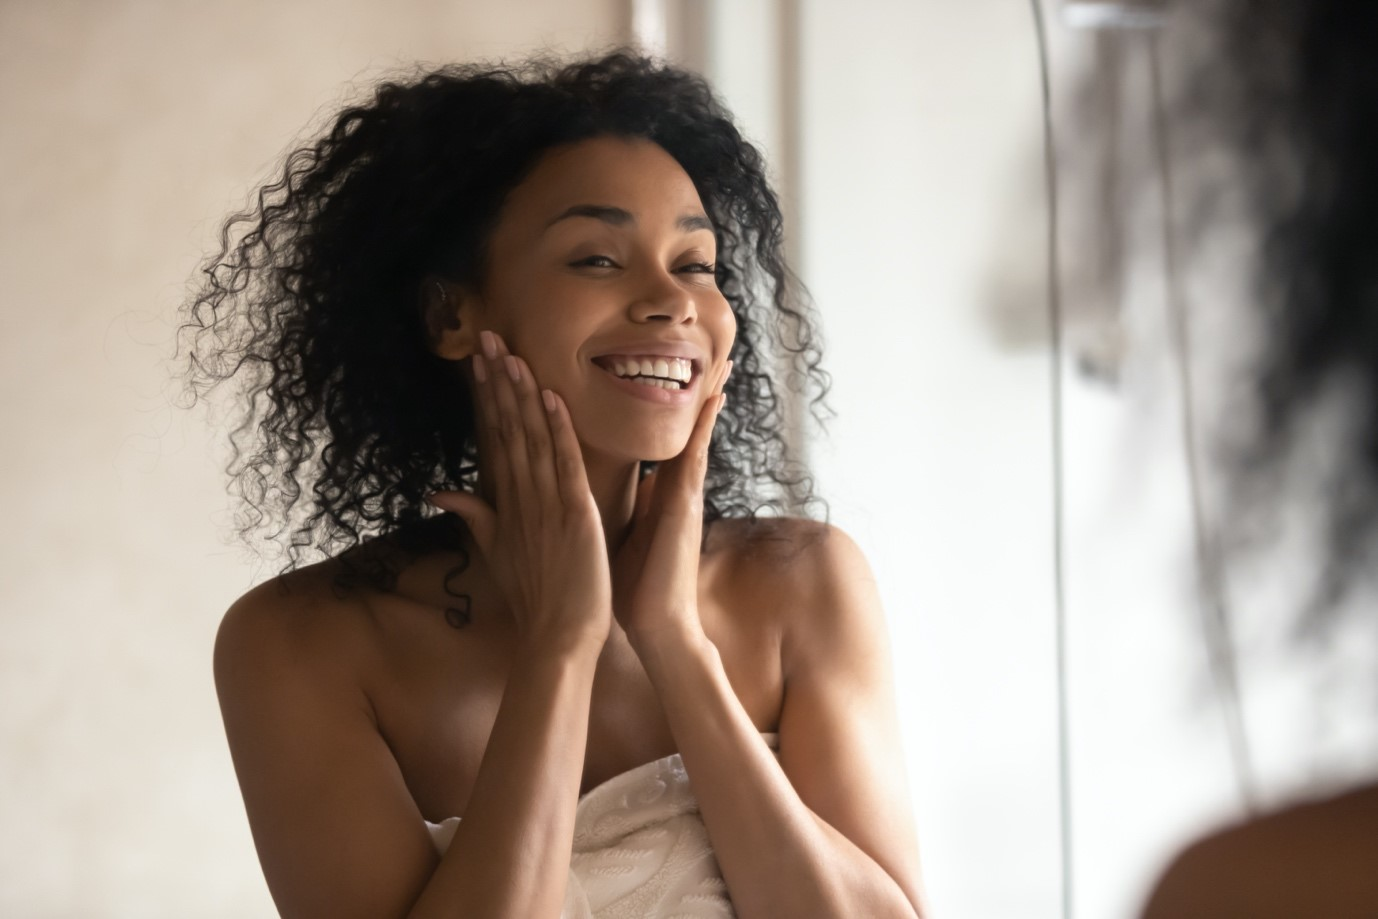 Woman in towel smiles in mirror after a shower